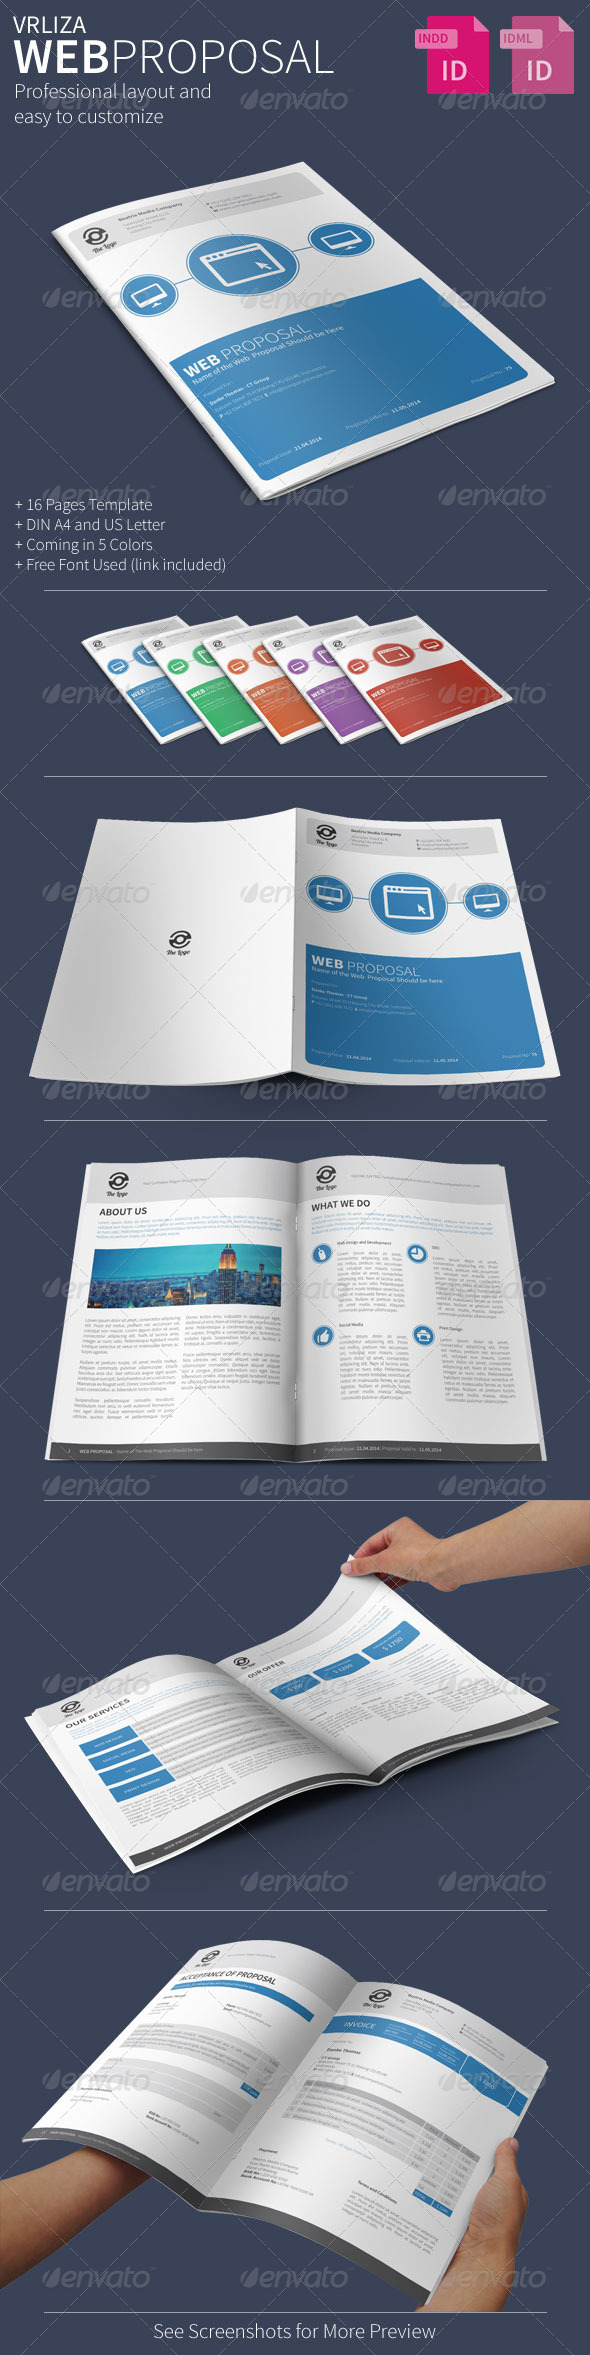 GraphicRiver Web Proposal 7256523